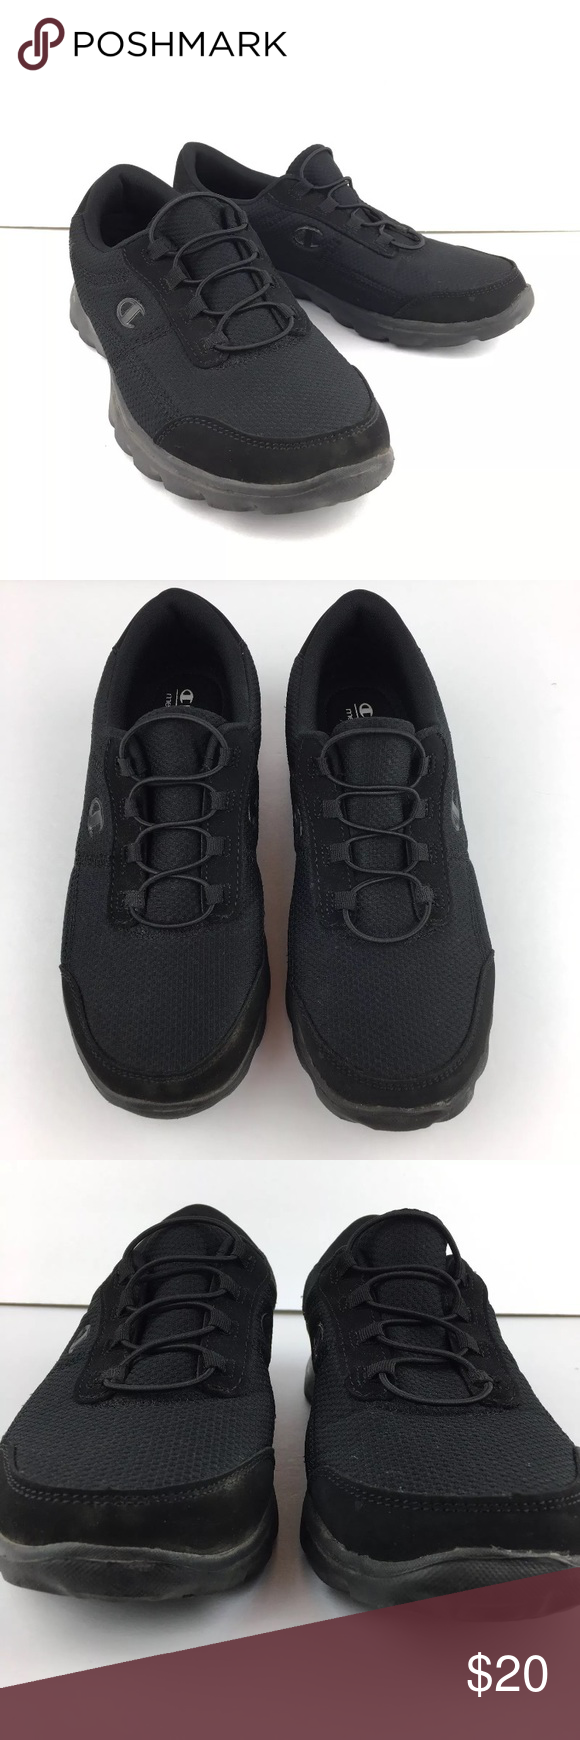 72fa33101c1 Champion Memory Foam Slip On Shoes Black Size 9W Listing includes 1 Pair of Champion  Memory